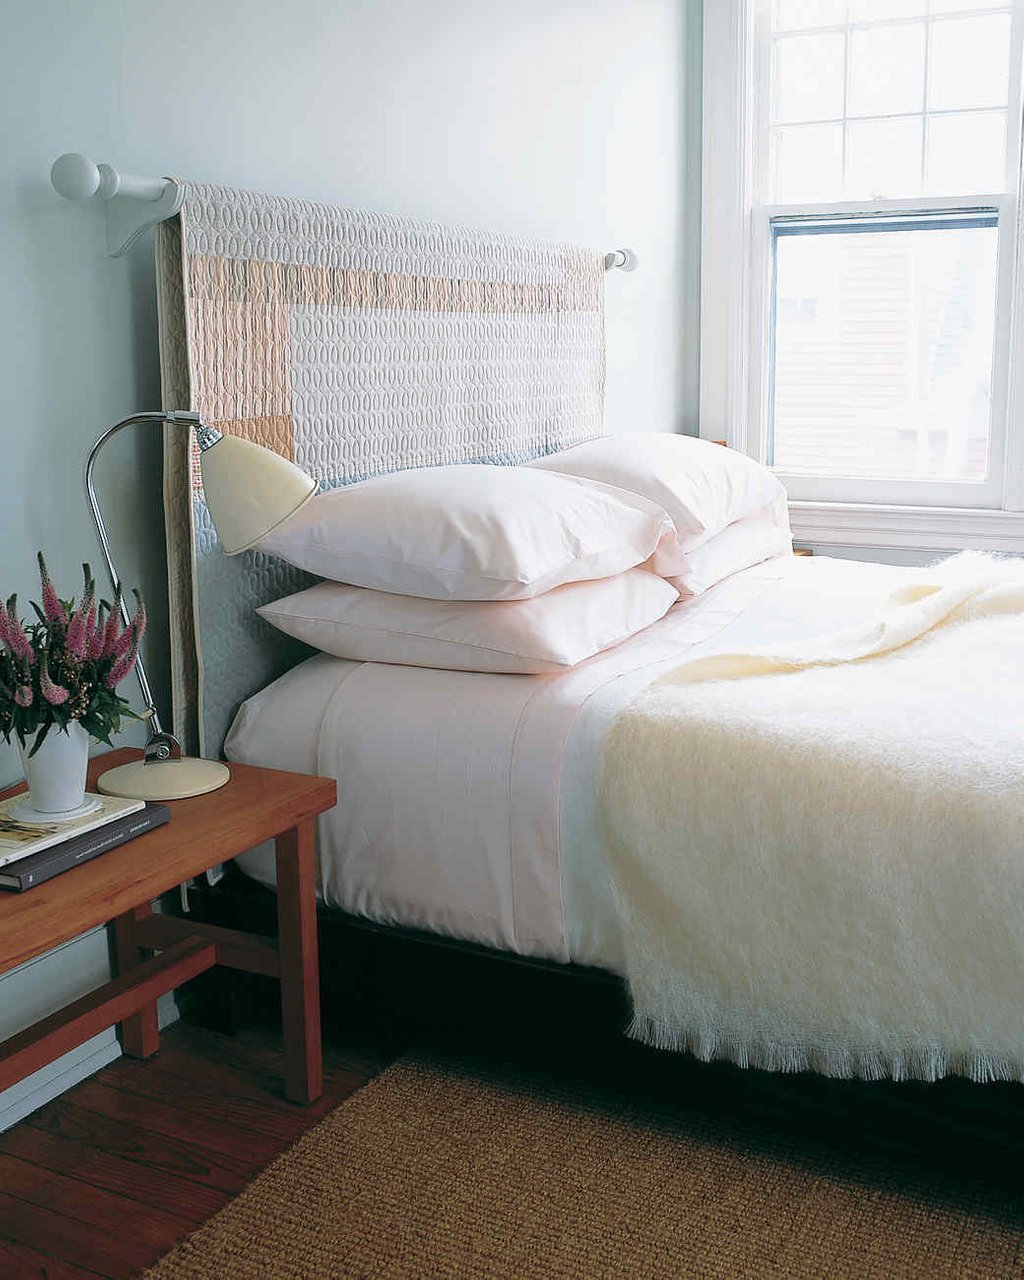 11 Diy Headboard Idea Give Bed Boost Martha King Size Bed Frame With Headboard